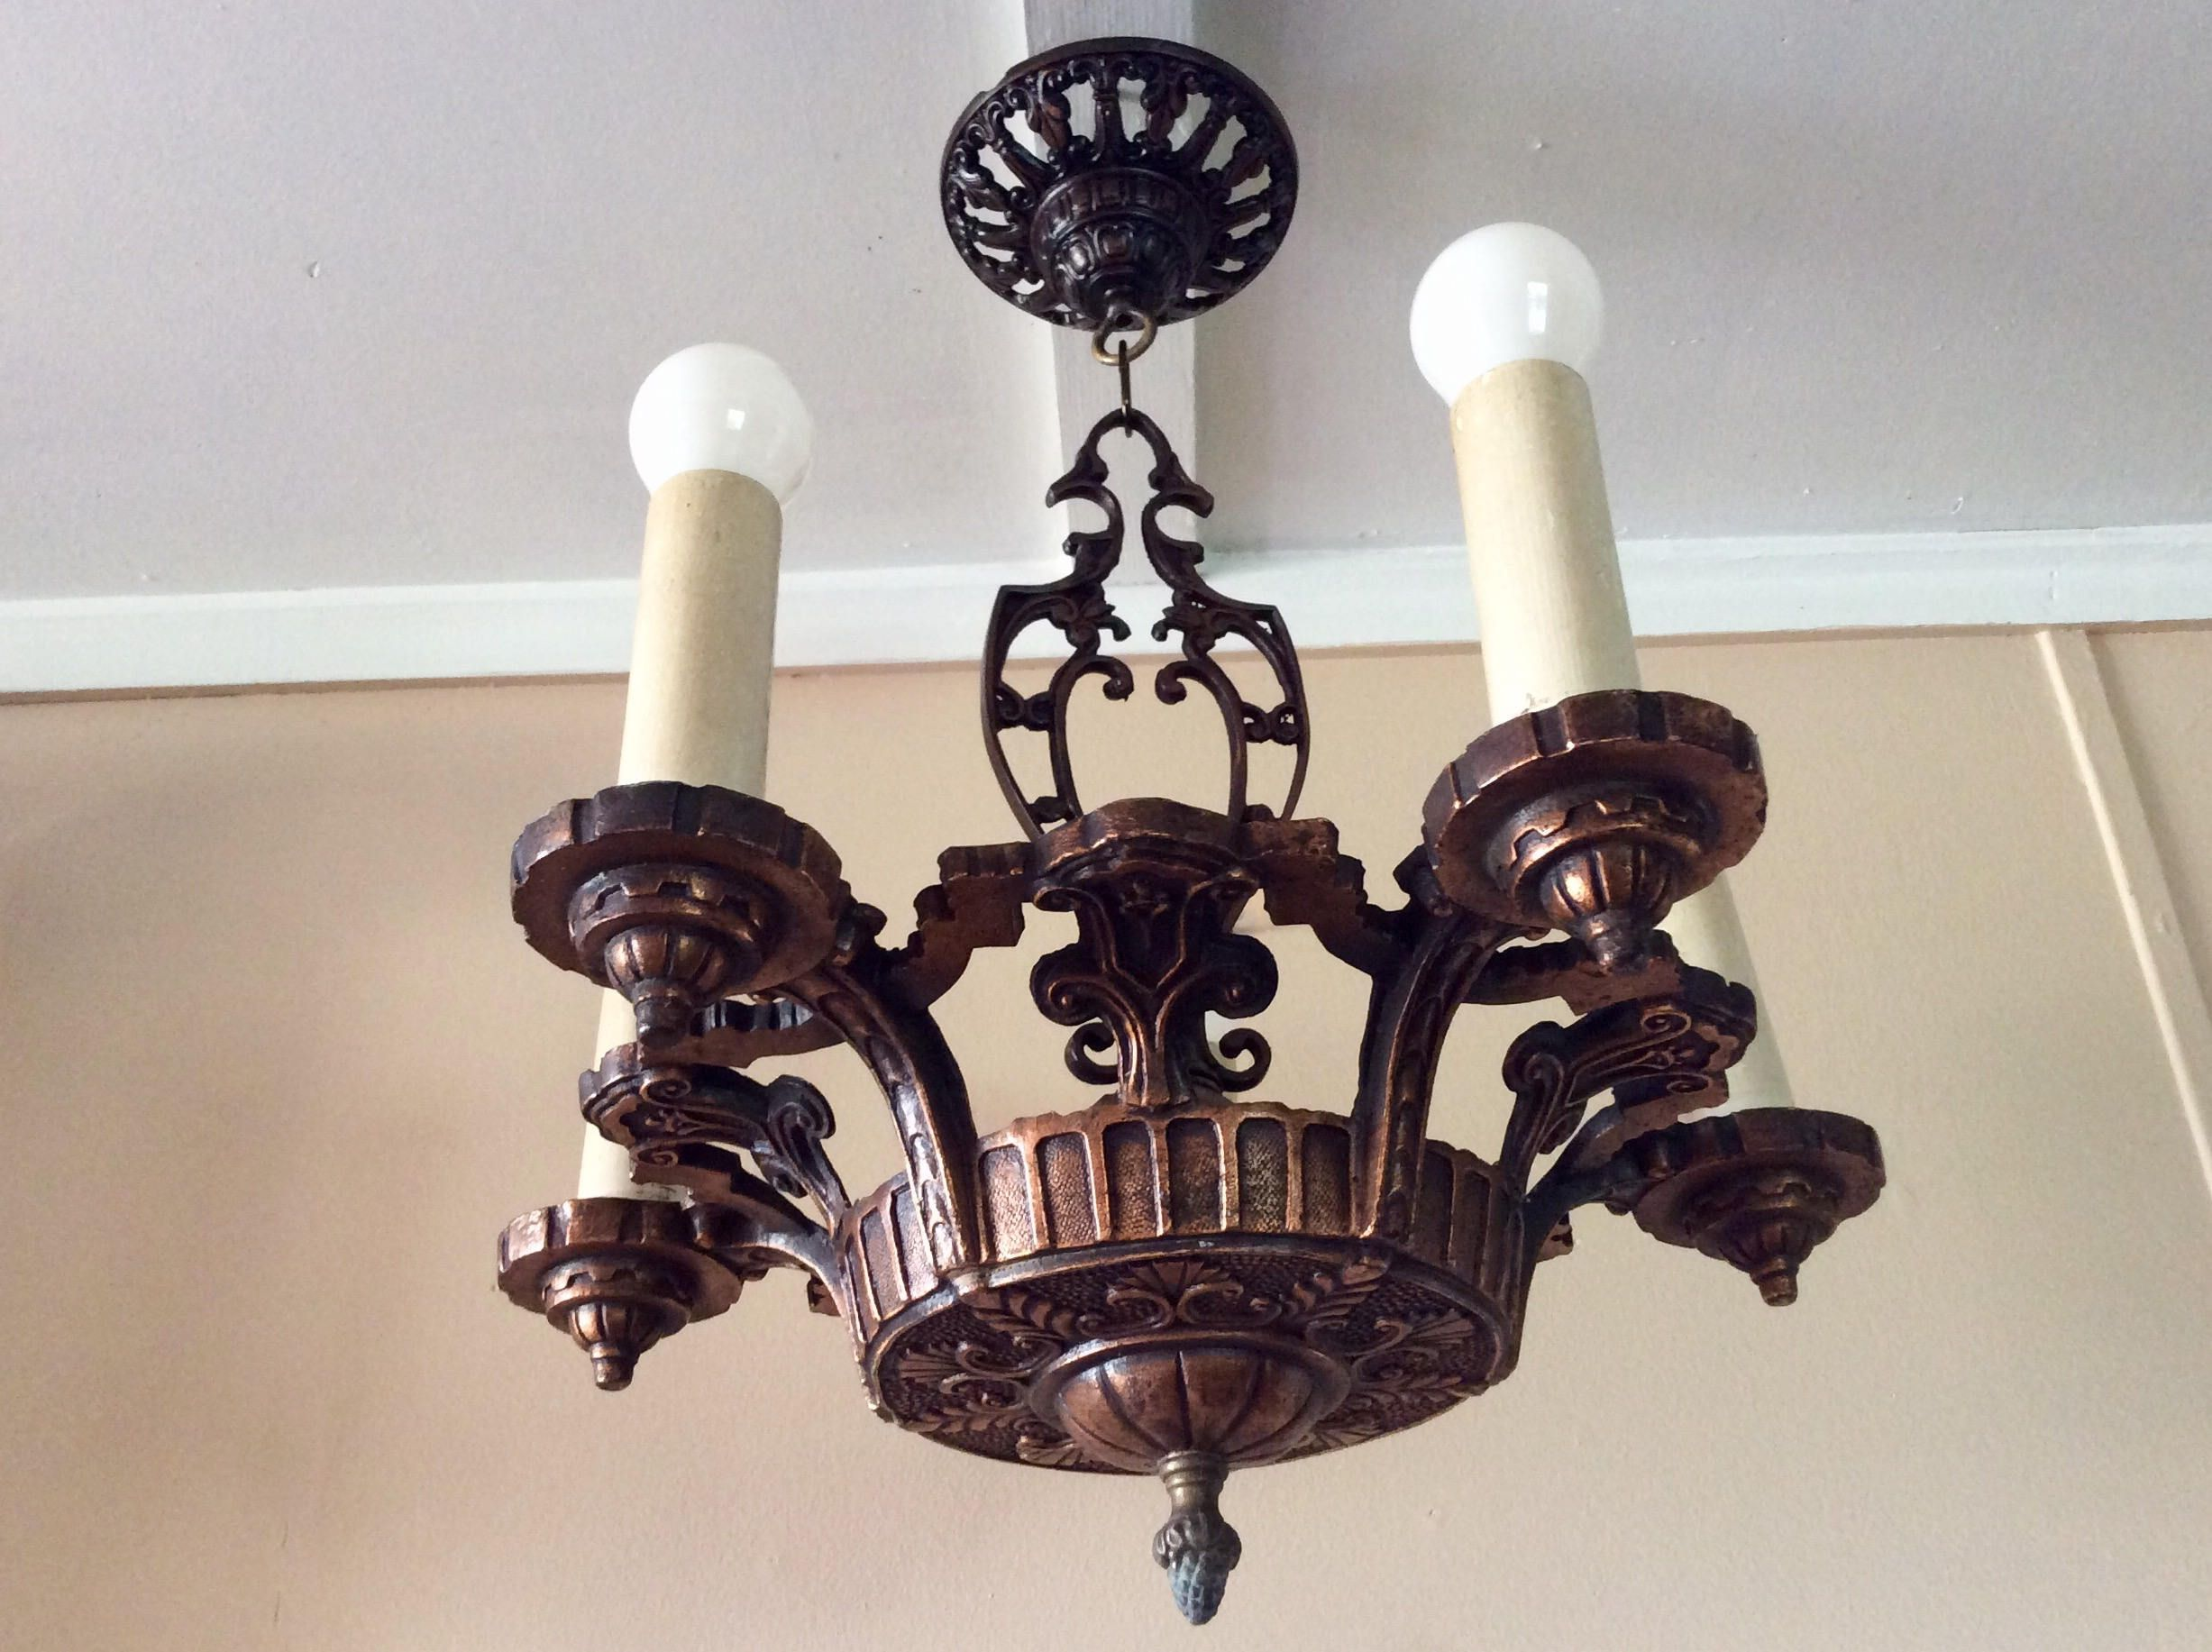 Antique Art Deco Chandelier Antique Copper 5 Candle Light Covers